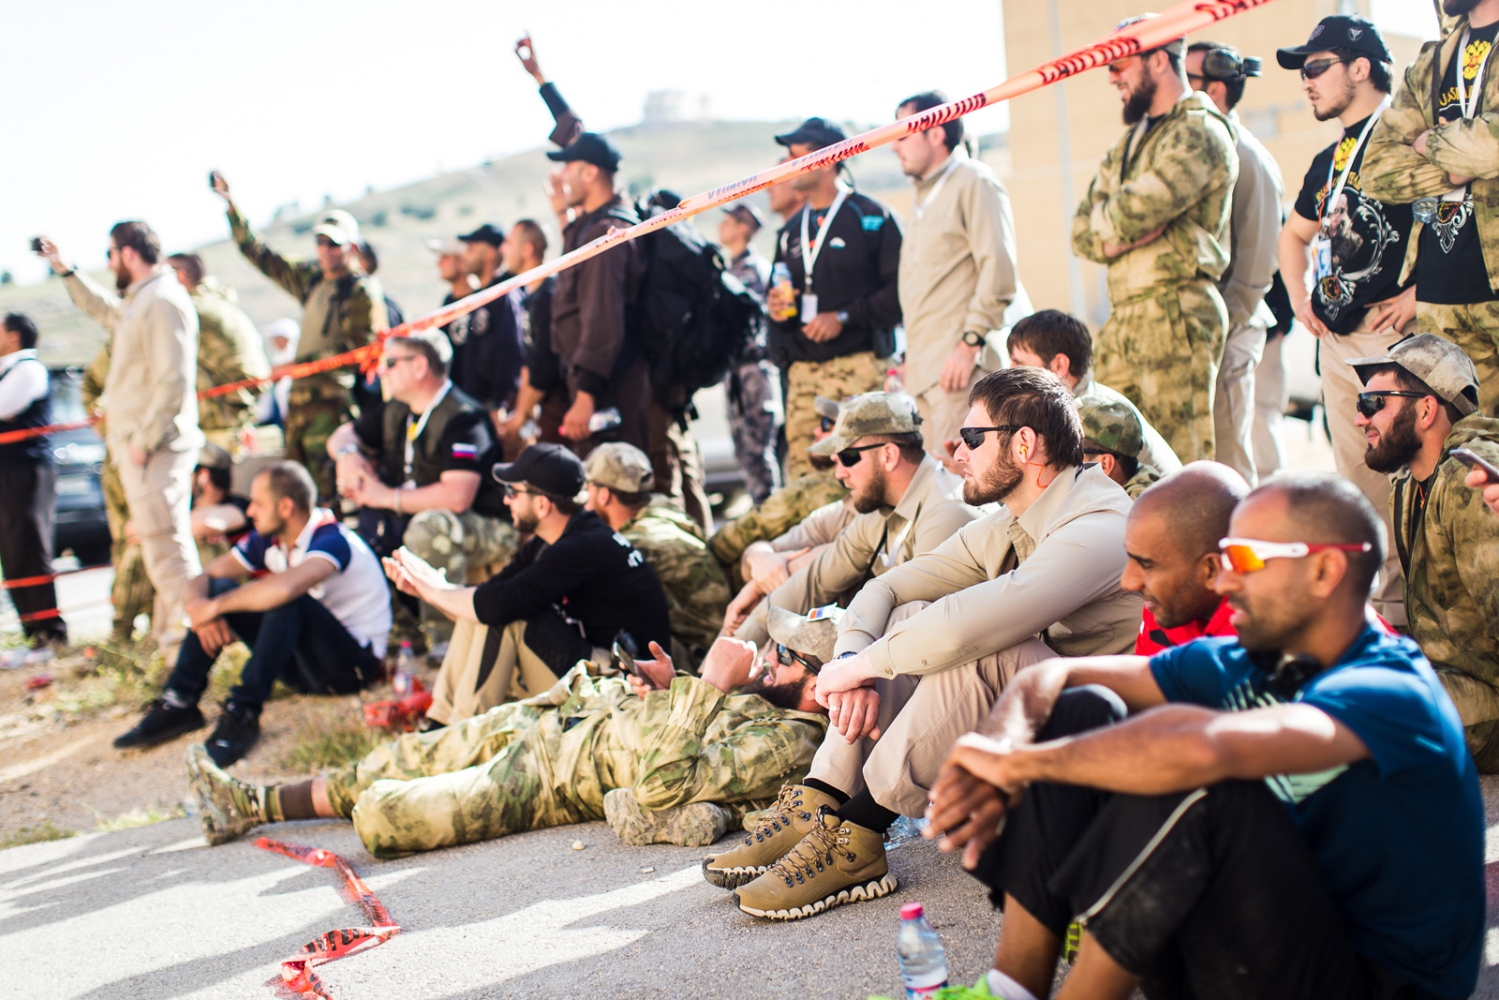 "Teams from various countries relax together and cheer on their teammates during the first event of the Warrior Competition, ""Top Gun."" Elite counter-terrorism teams from around the world compete for the title of champion at the King Abdullah II Special Operations Training Center near Amman, Jordan."